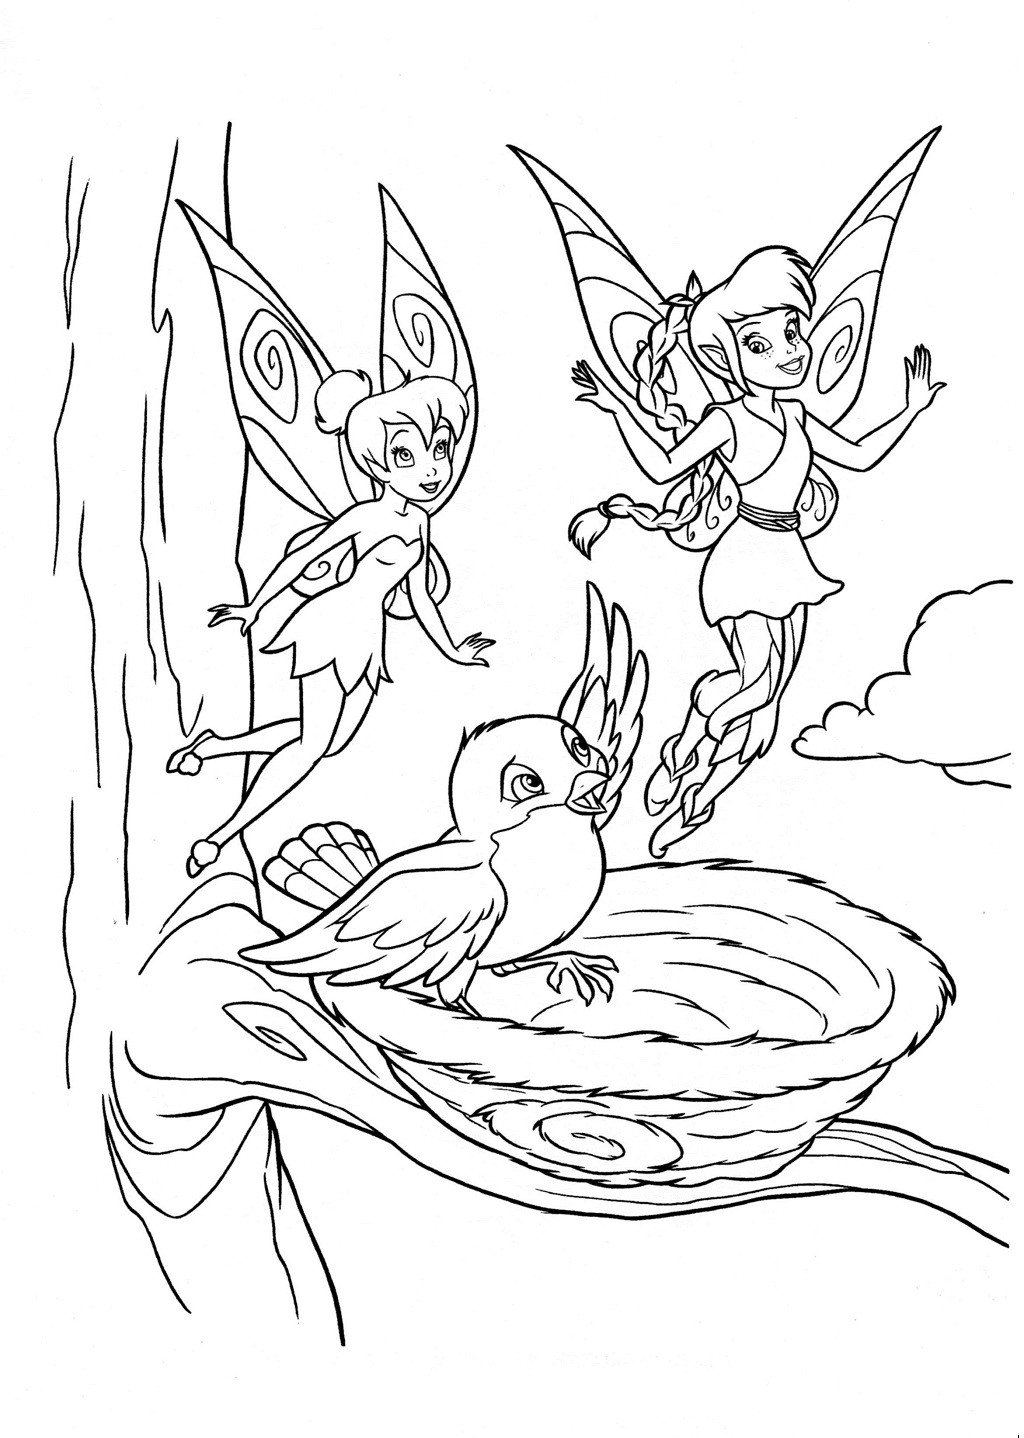 Tinker Bell Coloring Pages For Girls  Tinkerbell Fairies Coloring Pages Bestofcoloring